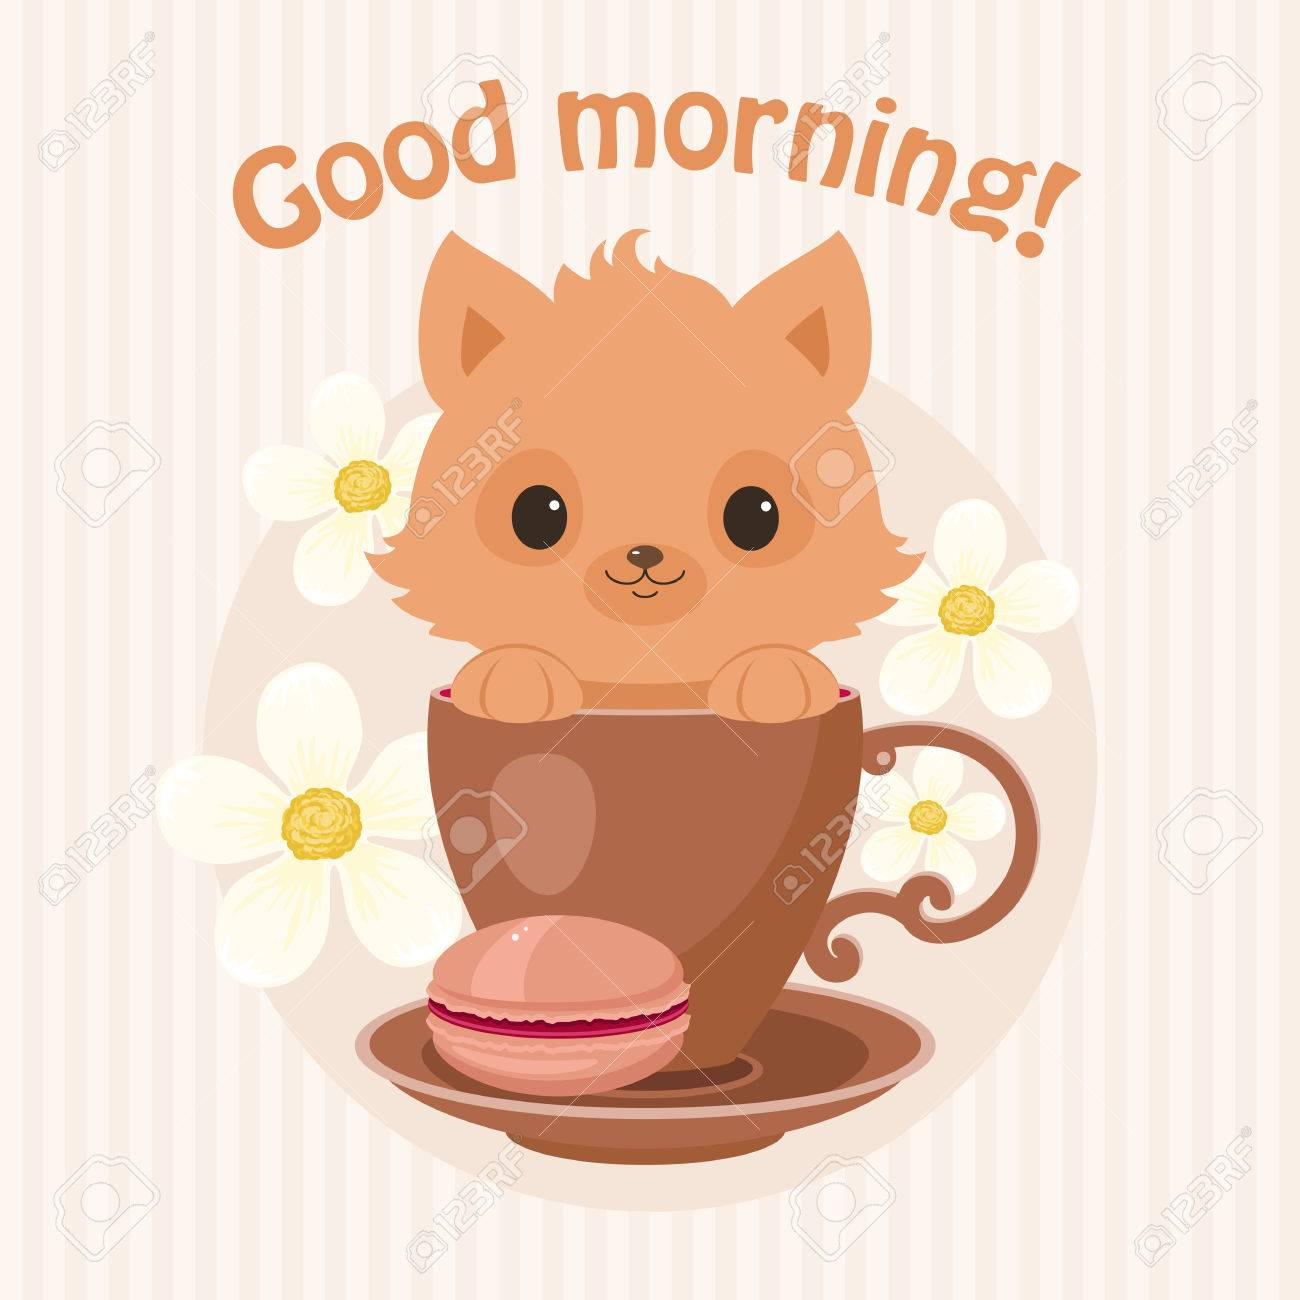 Brown kitten/cat in a tea cup vector illustration  Cute curious